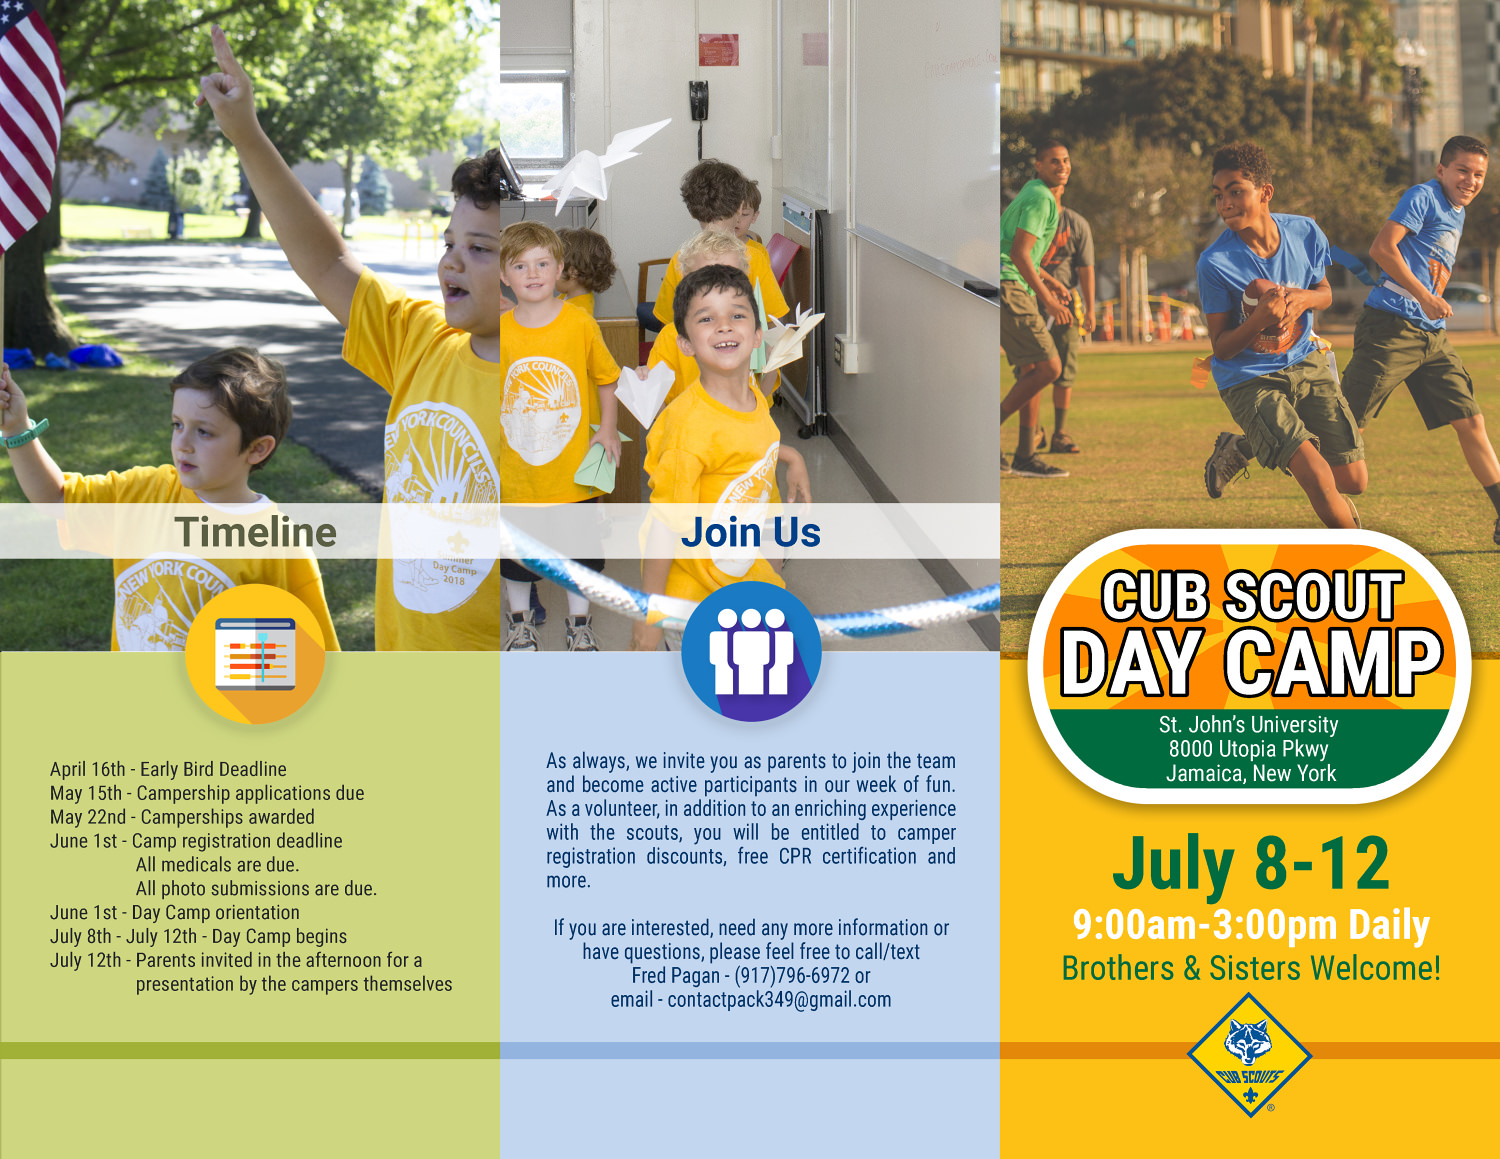 Queens Borough Day Camp | Greater New York Councils